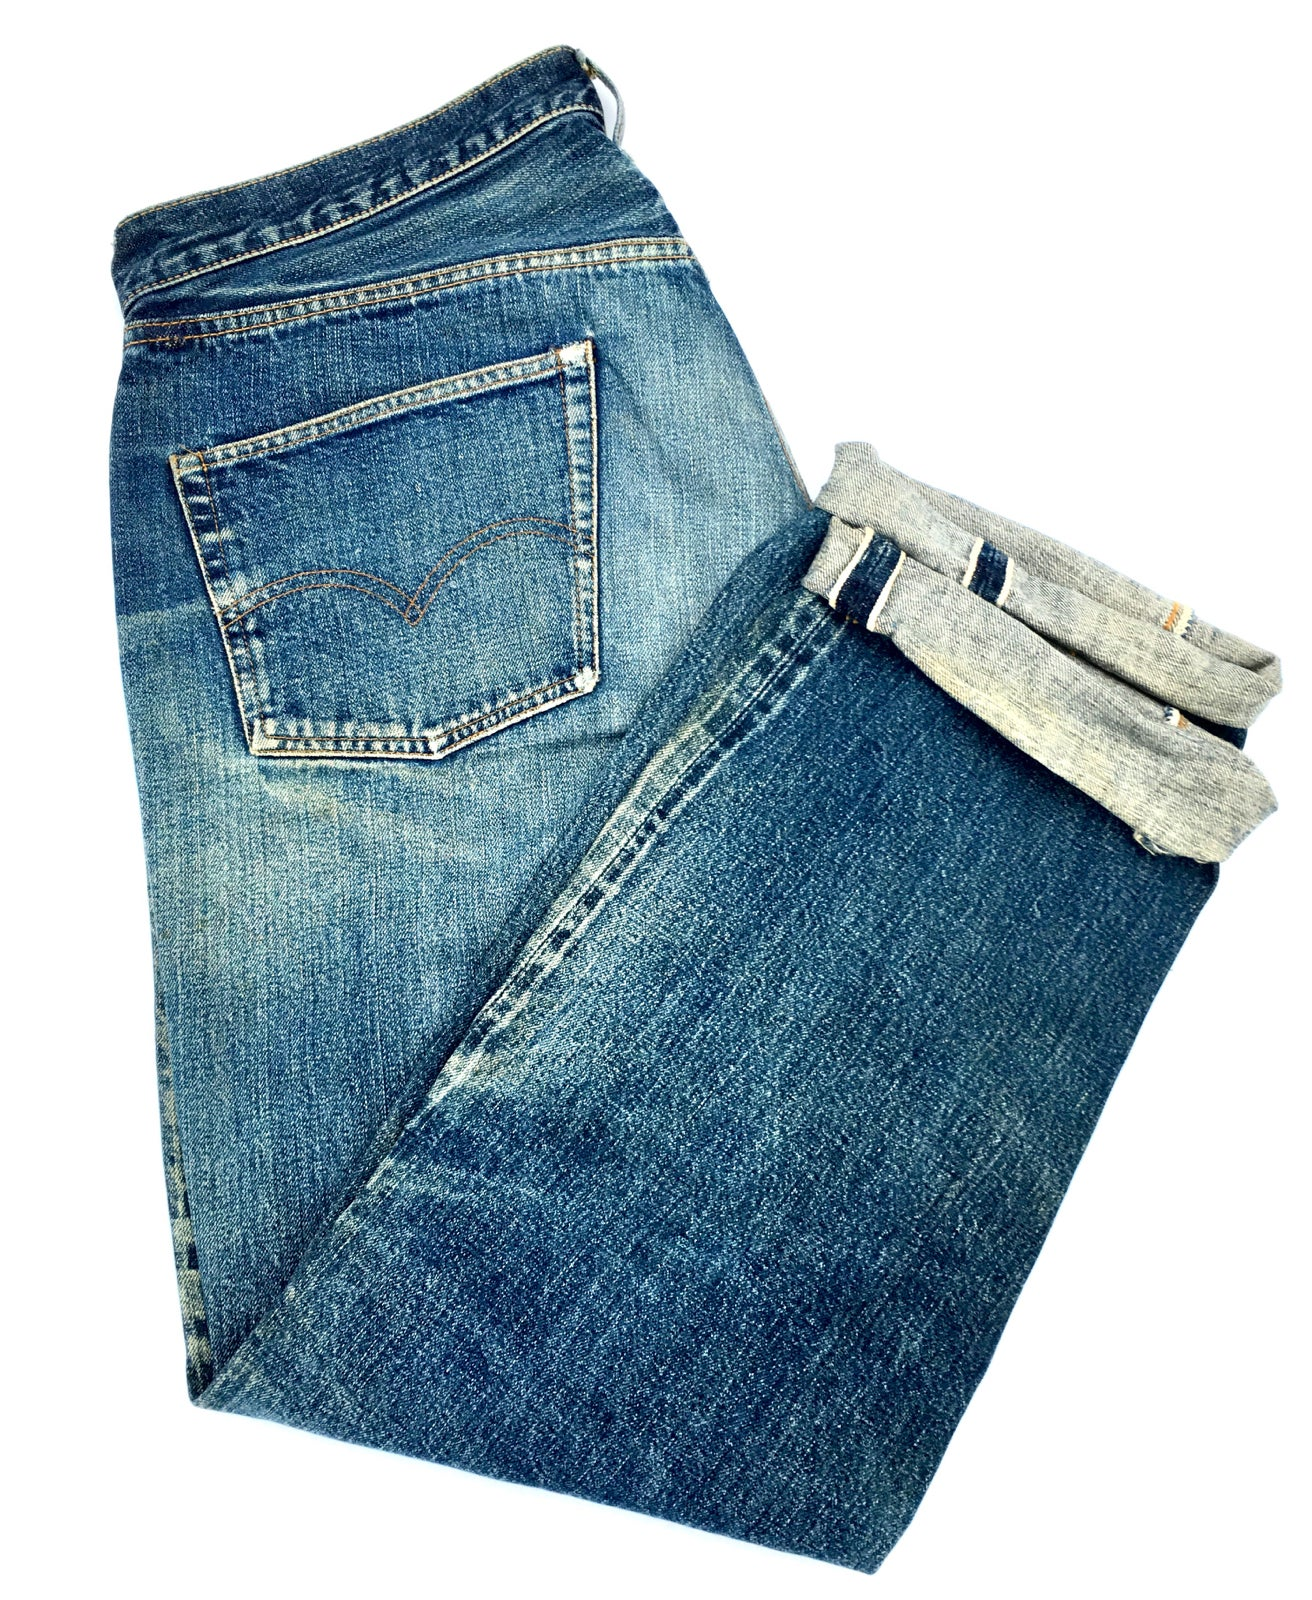 Image of Vintage Levi's 501 Big E